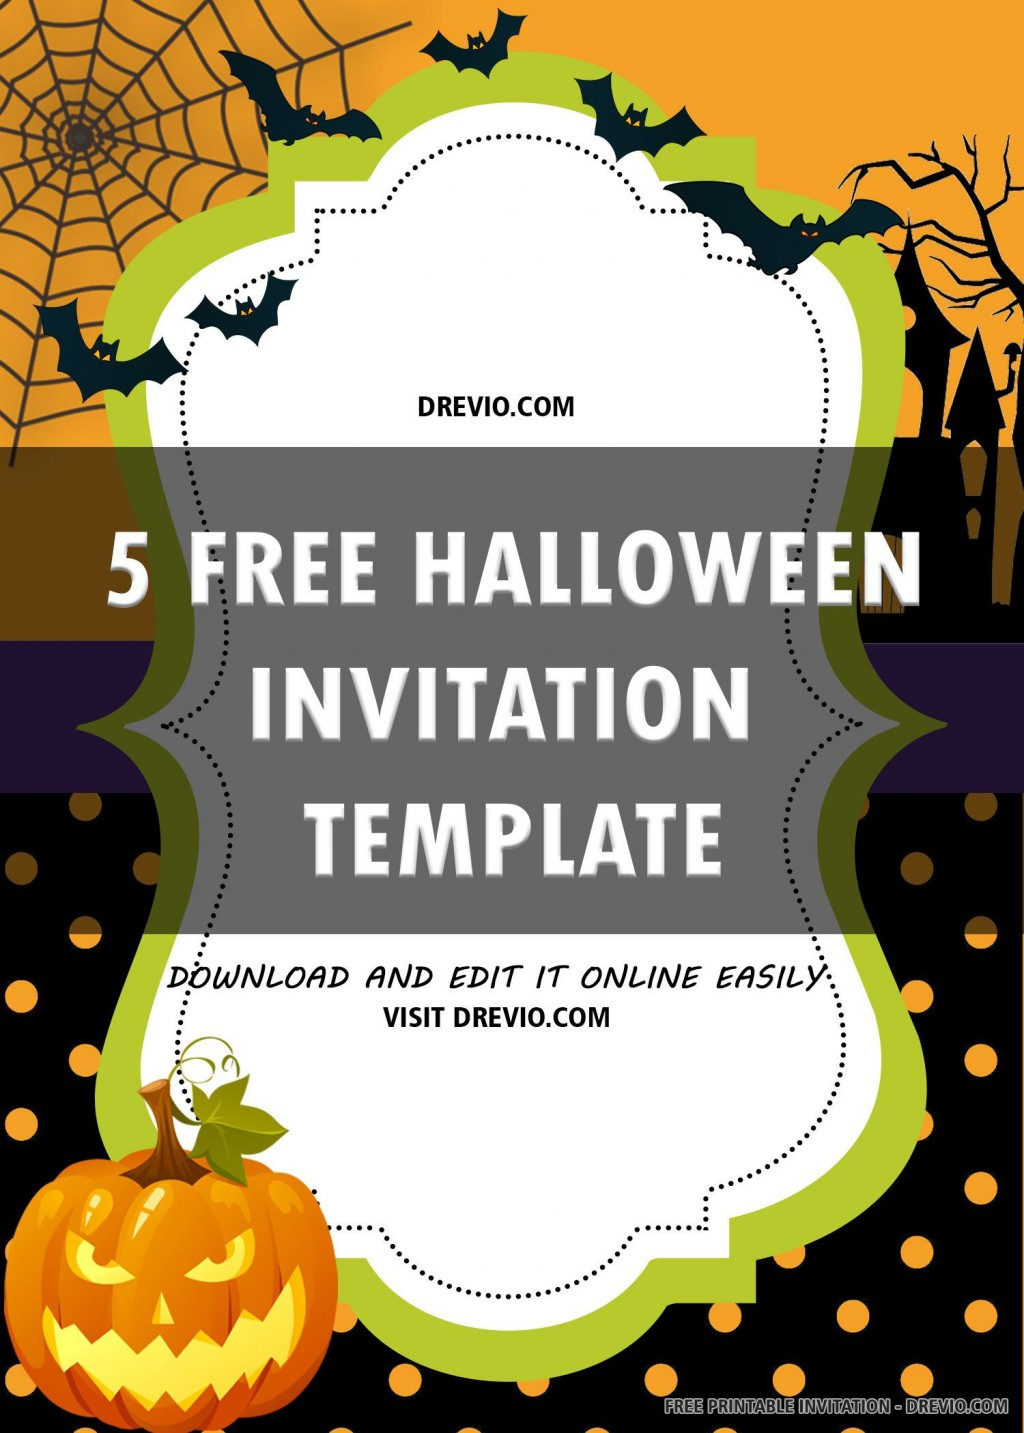 006 Excellent Halloween Party Invitation Template Concept  Templates Scary SpookyLarge